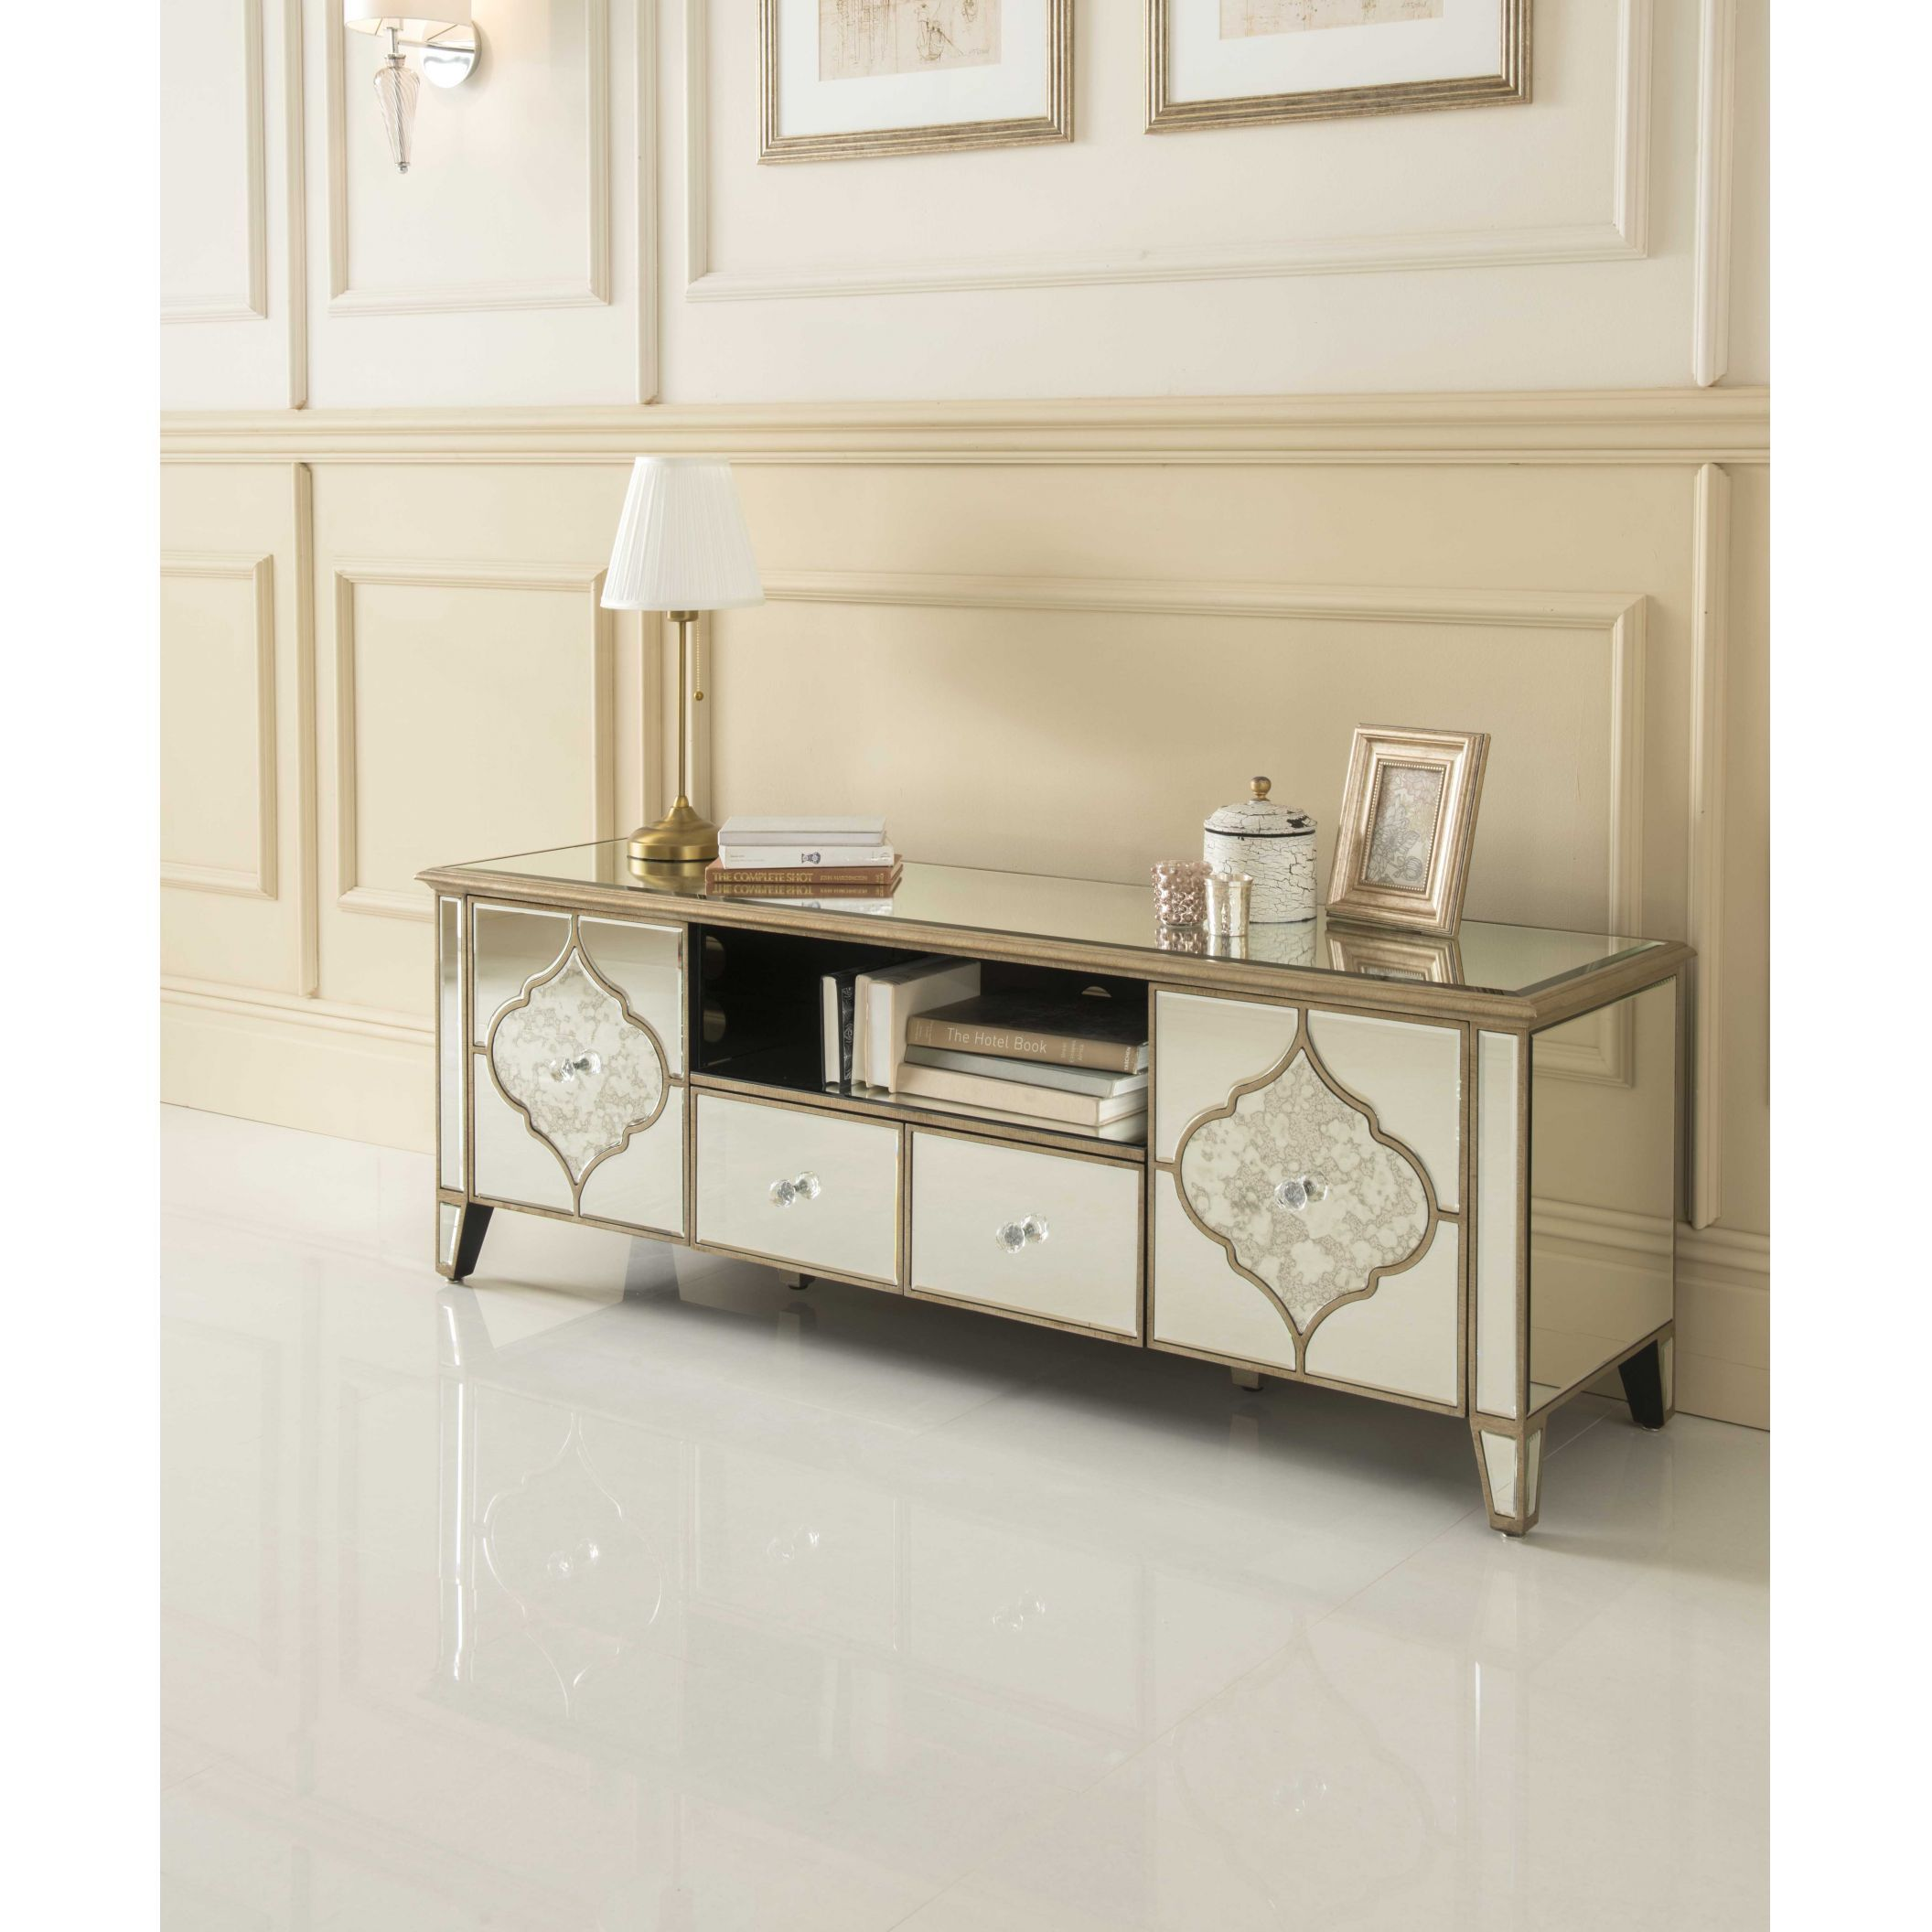 Sassari Mirrored TV Cabinet NOW £719.99 - From our collection of ...